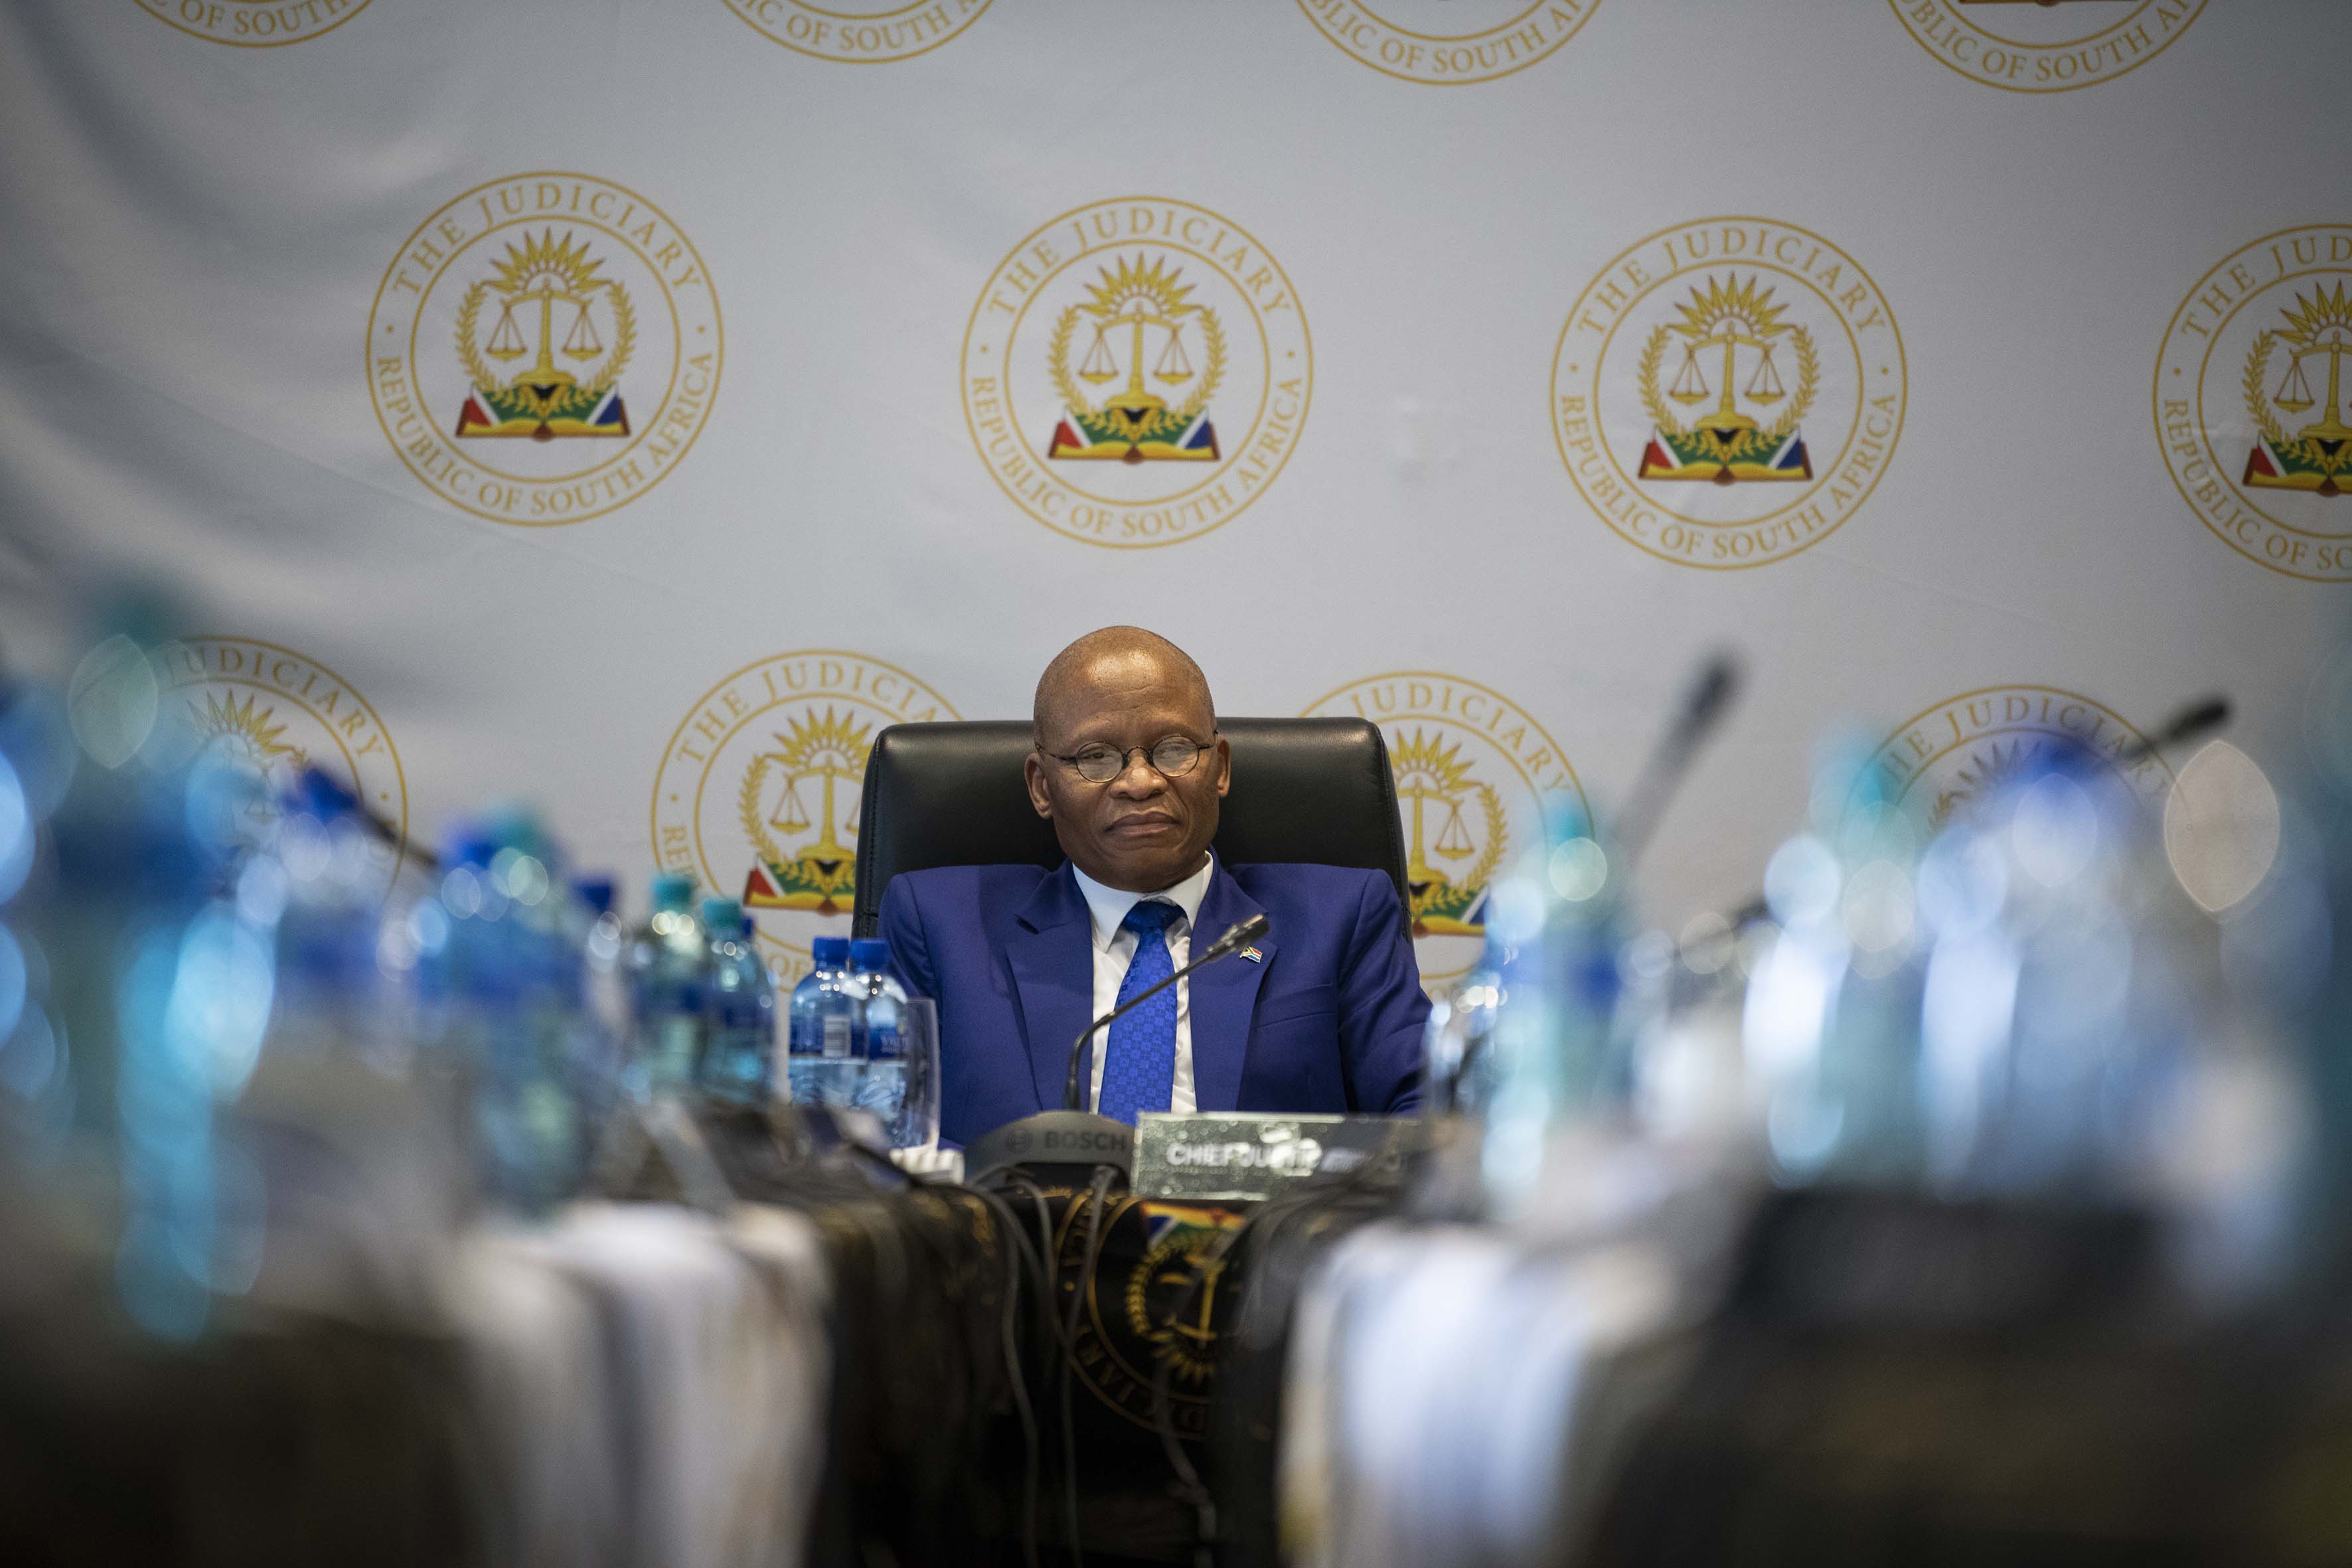 3 April 2019: Chief Justice Mogoeng Mogoeng chairing the JSC interviews.